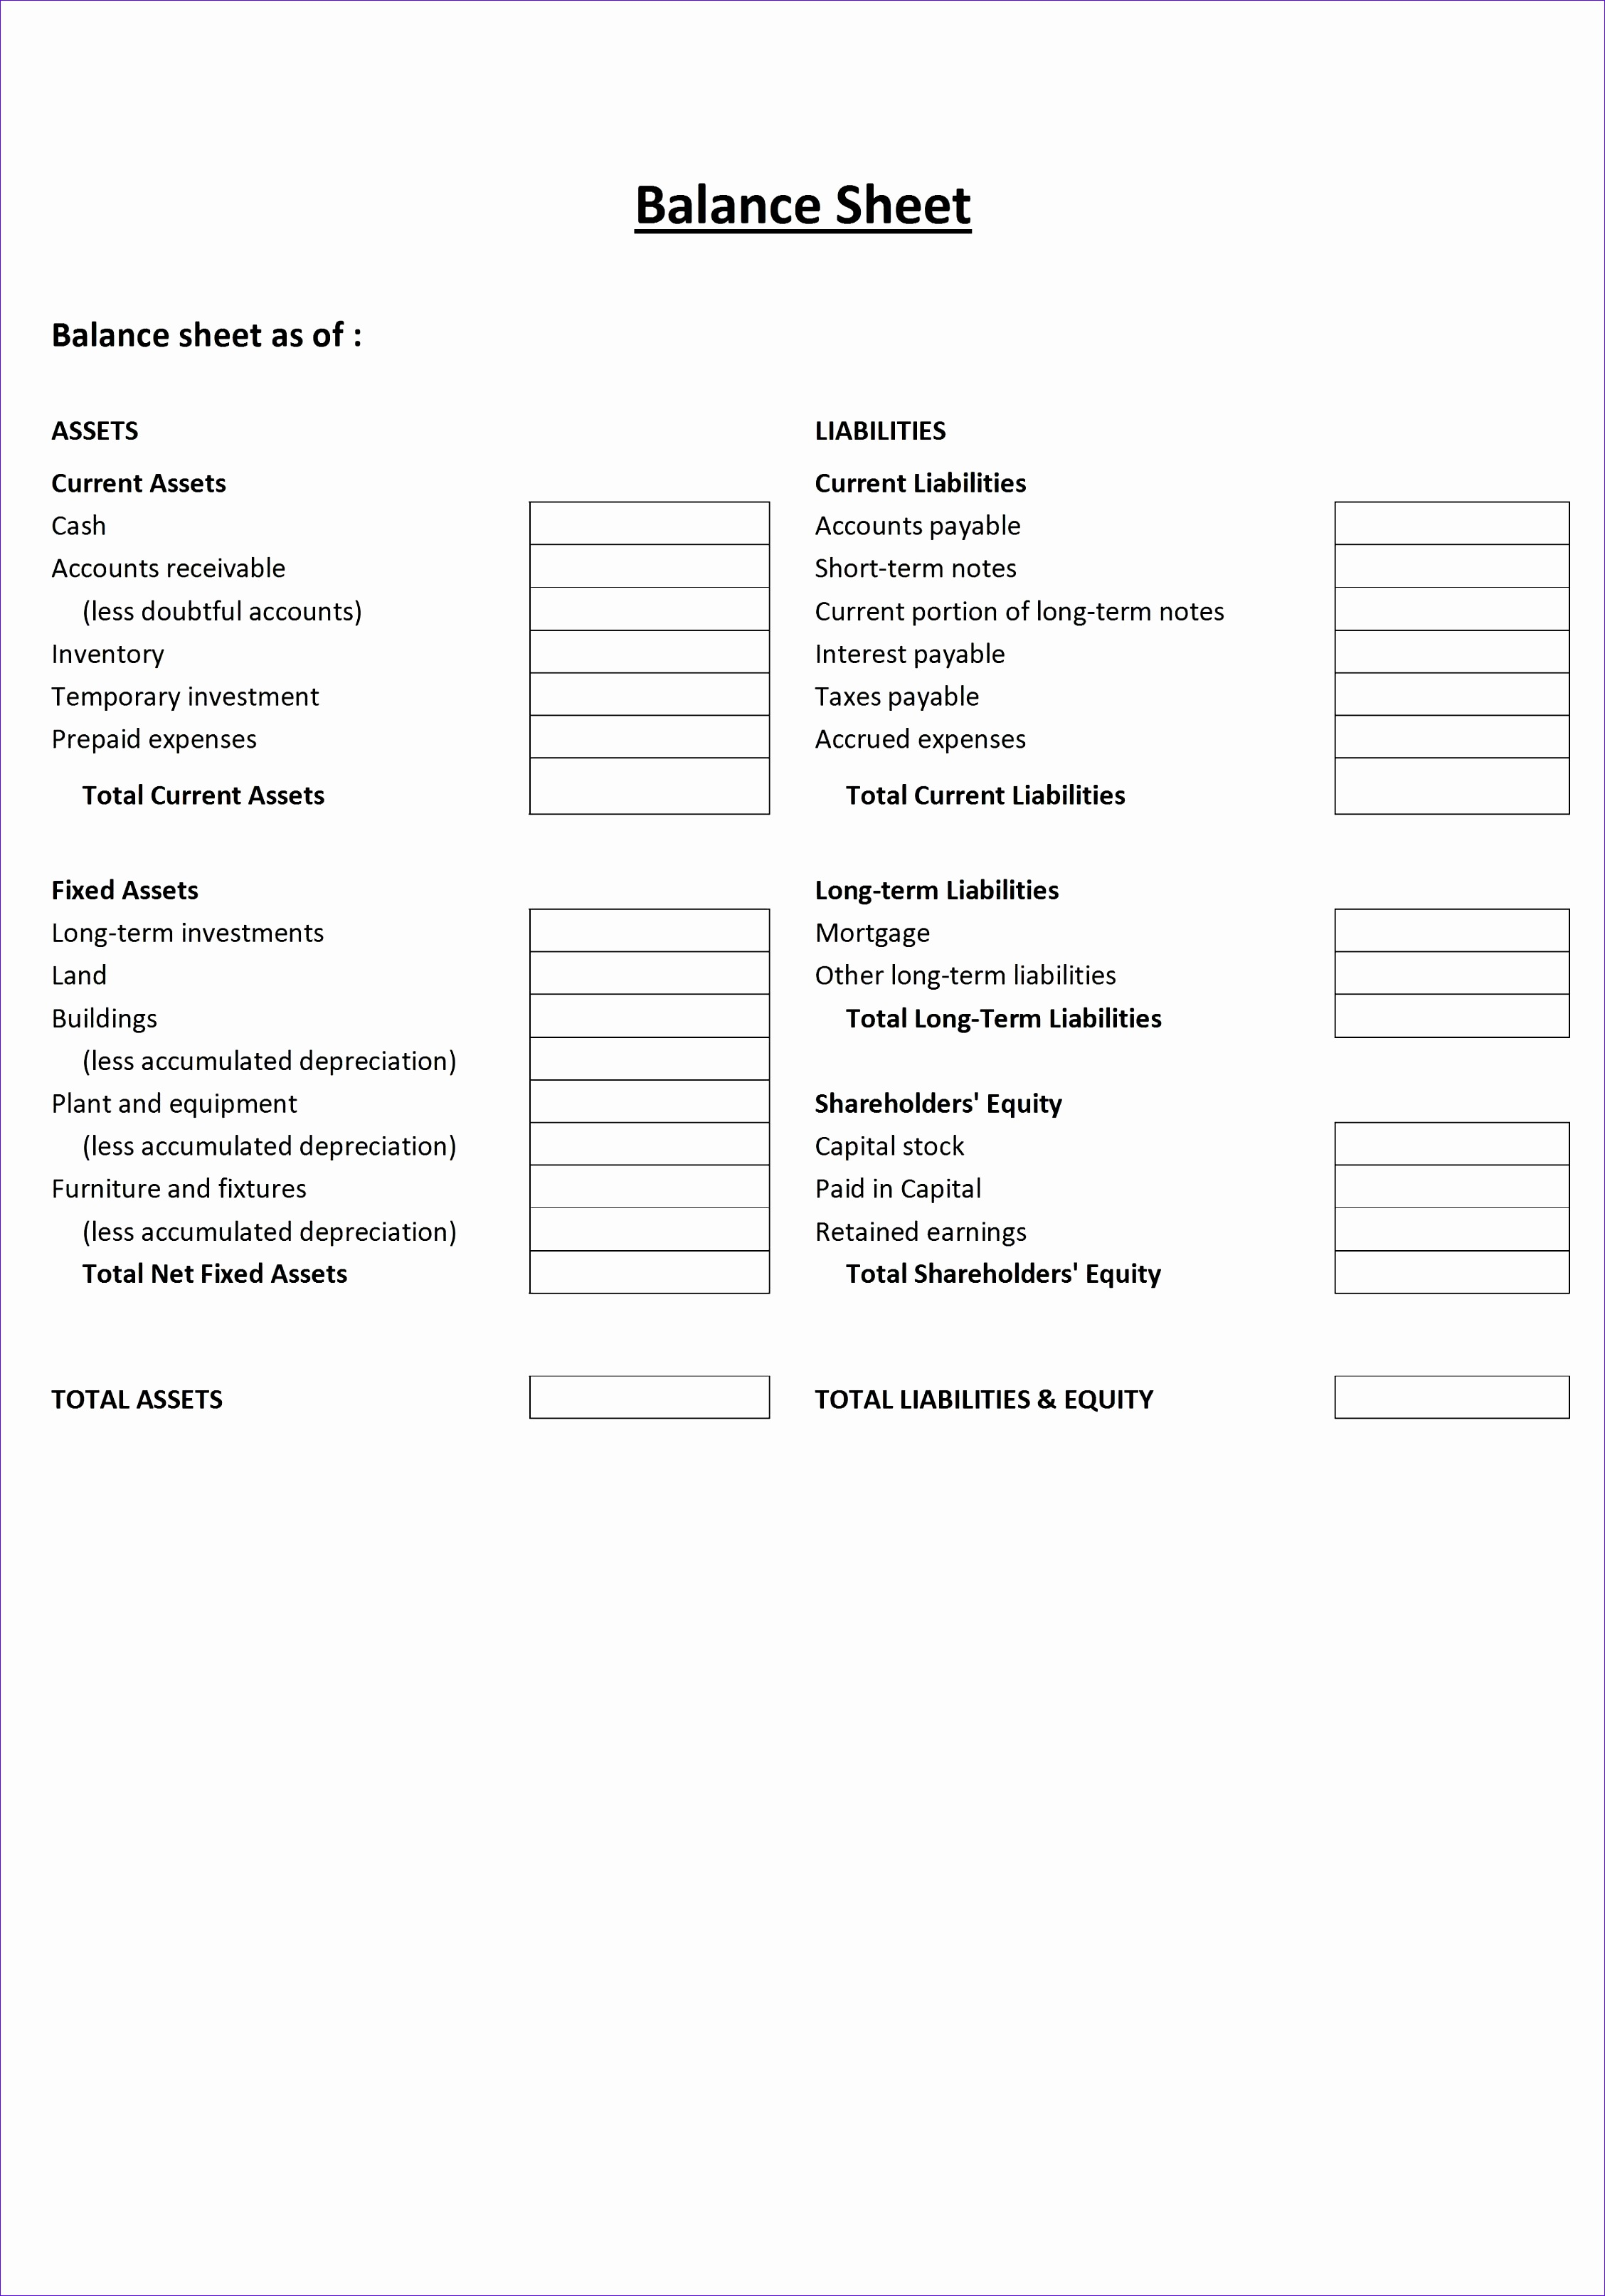 Attractive ... Asset Register Template Excel Ccqgd New Free Printable Balance Sheet  Template ... Idea Free Personal Balance Sheet Template